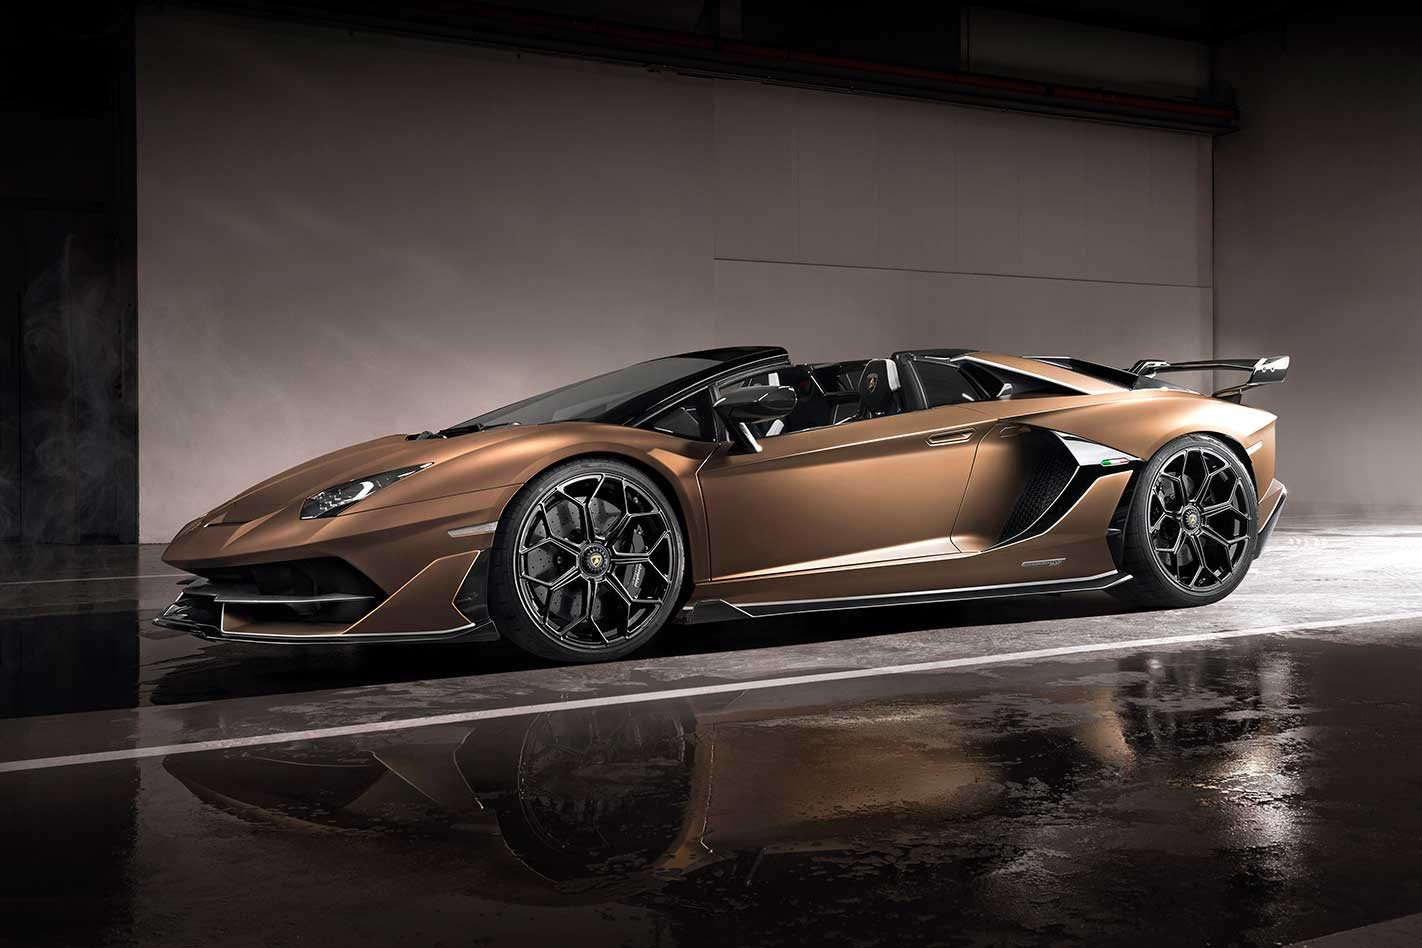 Lamborghini Aventador Svj Roadster Revealed At The 2019 Geneva Motor